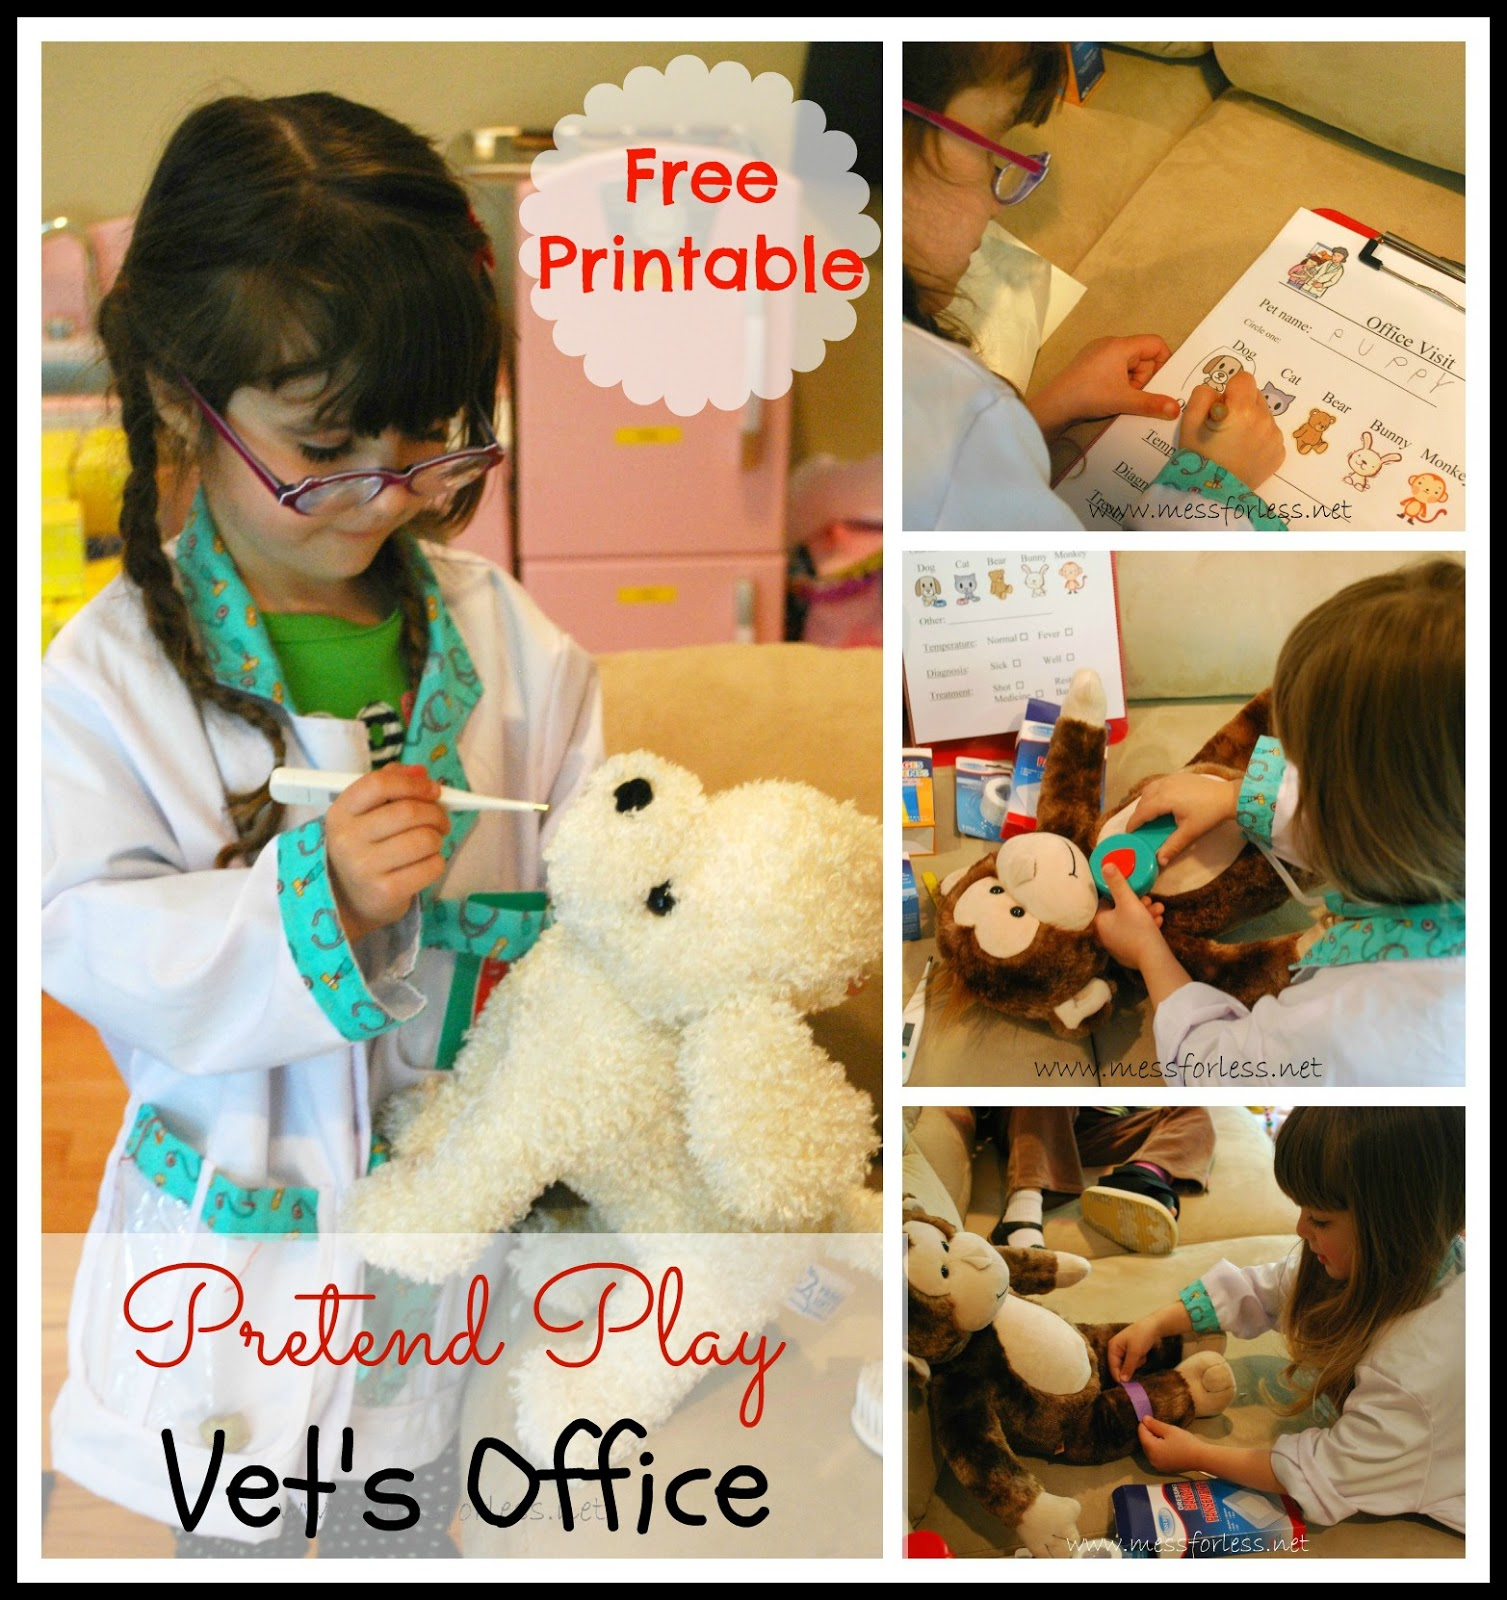 Free Printable For Vets Office Kids kids dramaticplay pretend